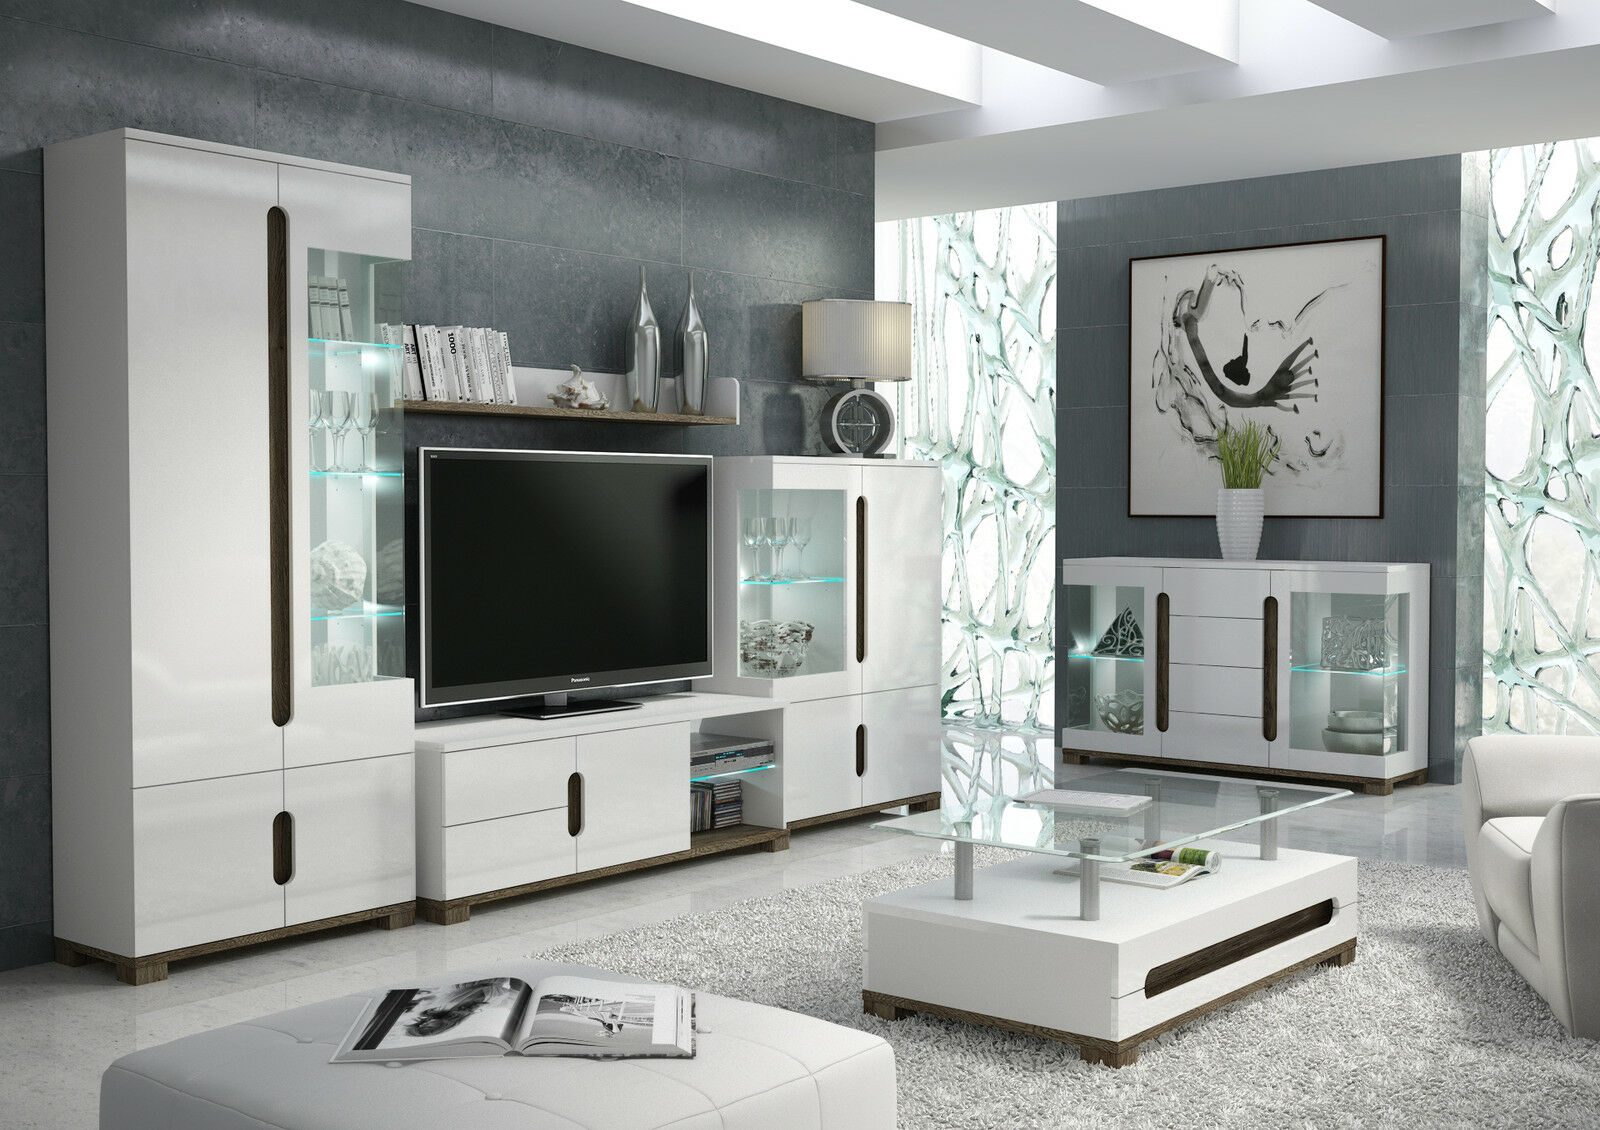 lorenz high gloss white sideboard tv unit tall display cabinet lounge furniture ebay. Black Bedroom Furniture Sets. Home Design Ideas